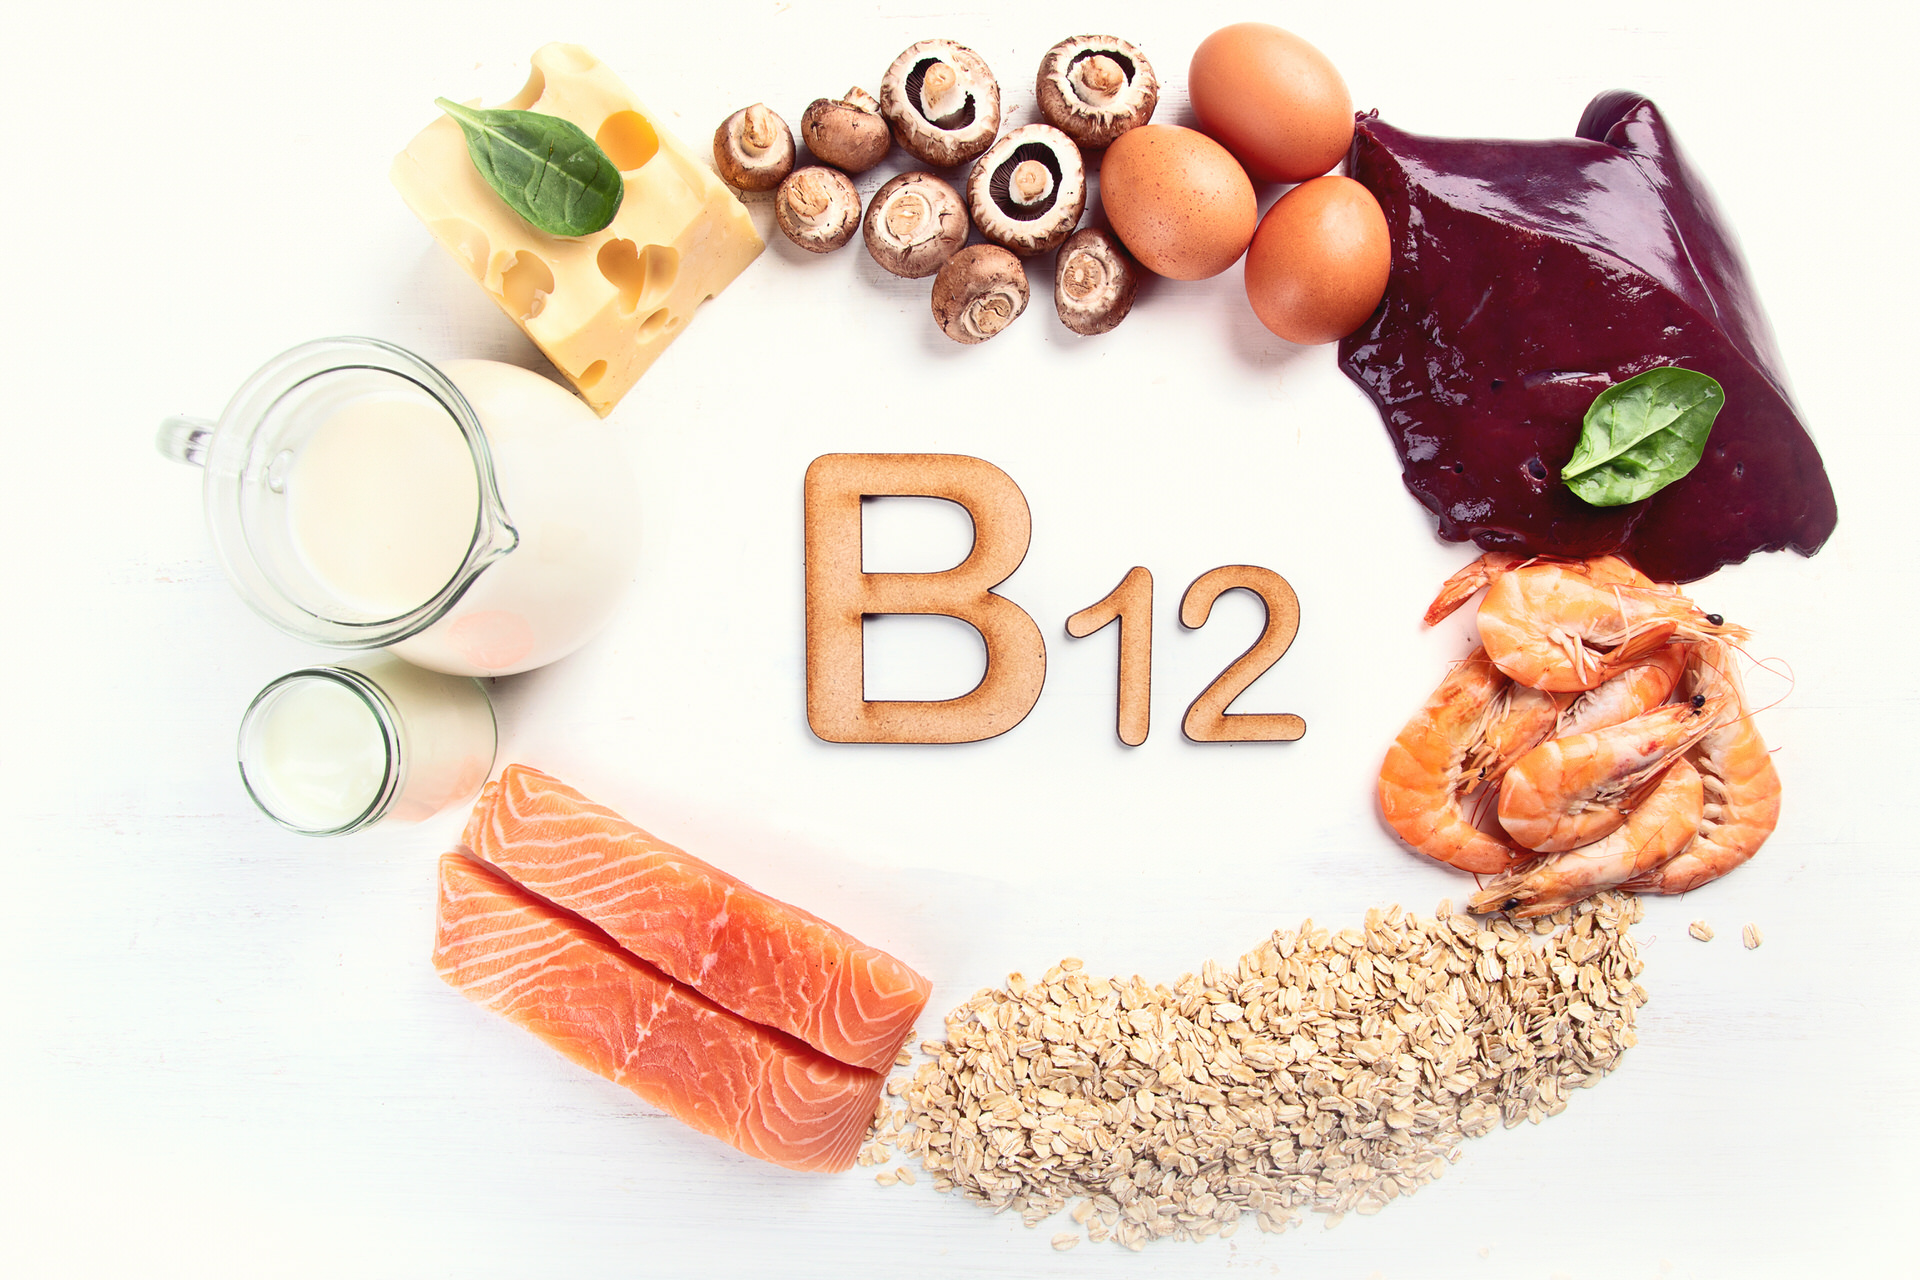 Food Items For Vitamin B12 Deficiency